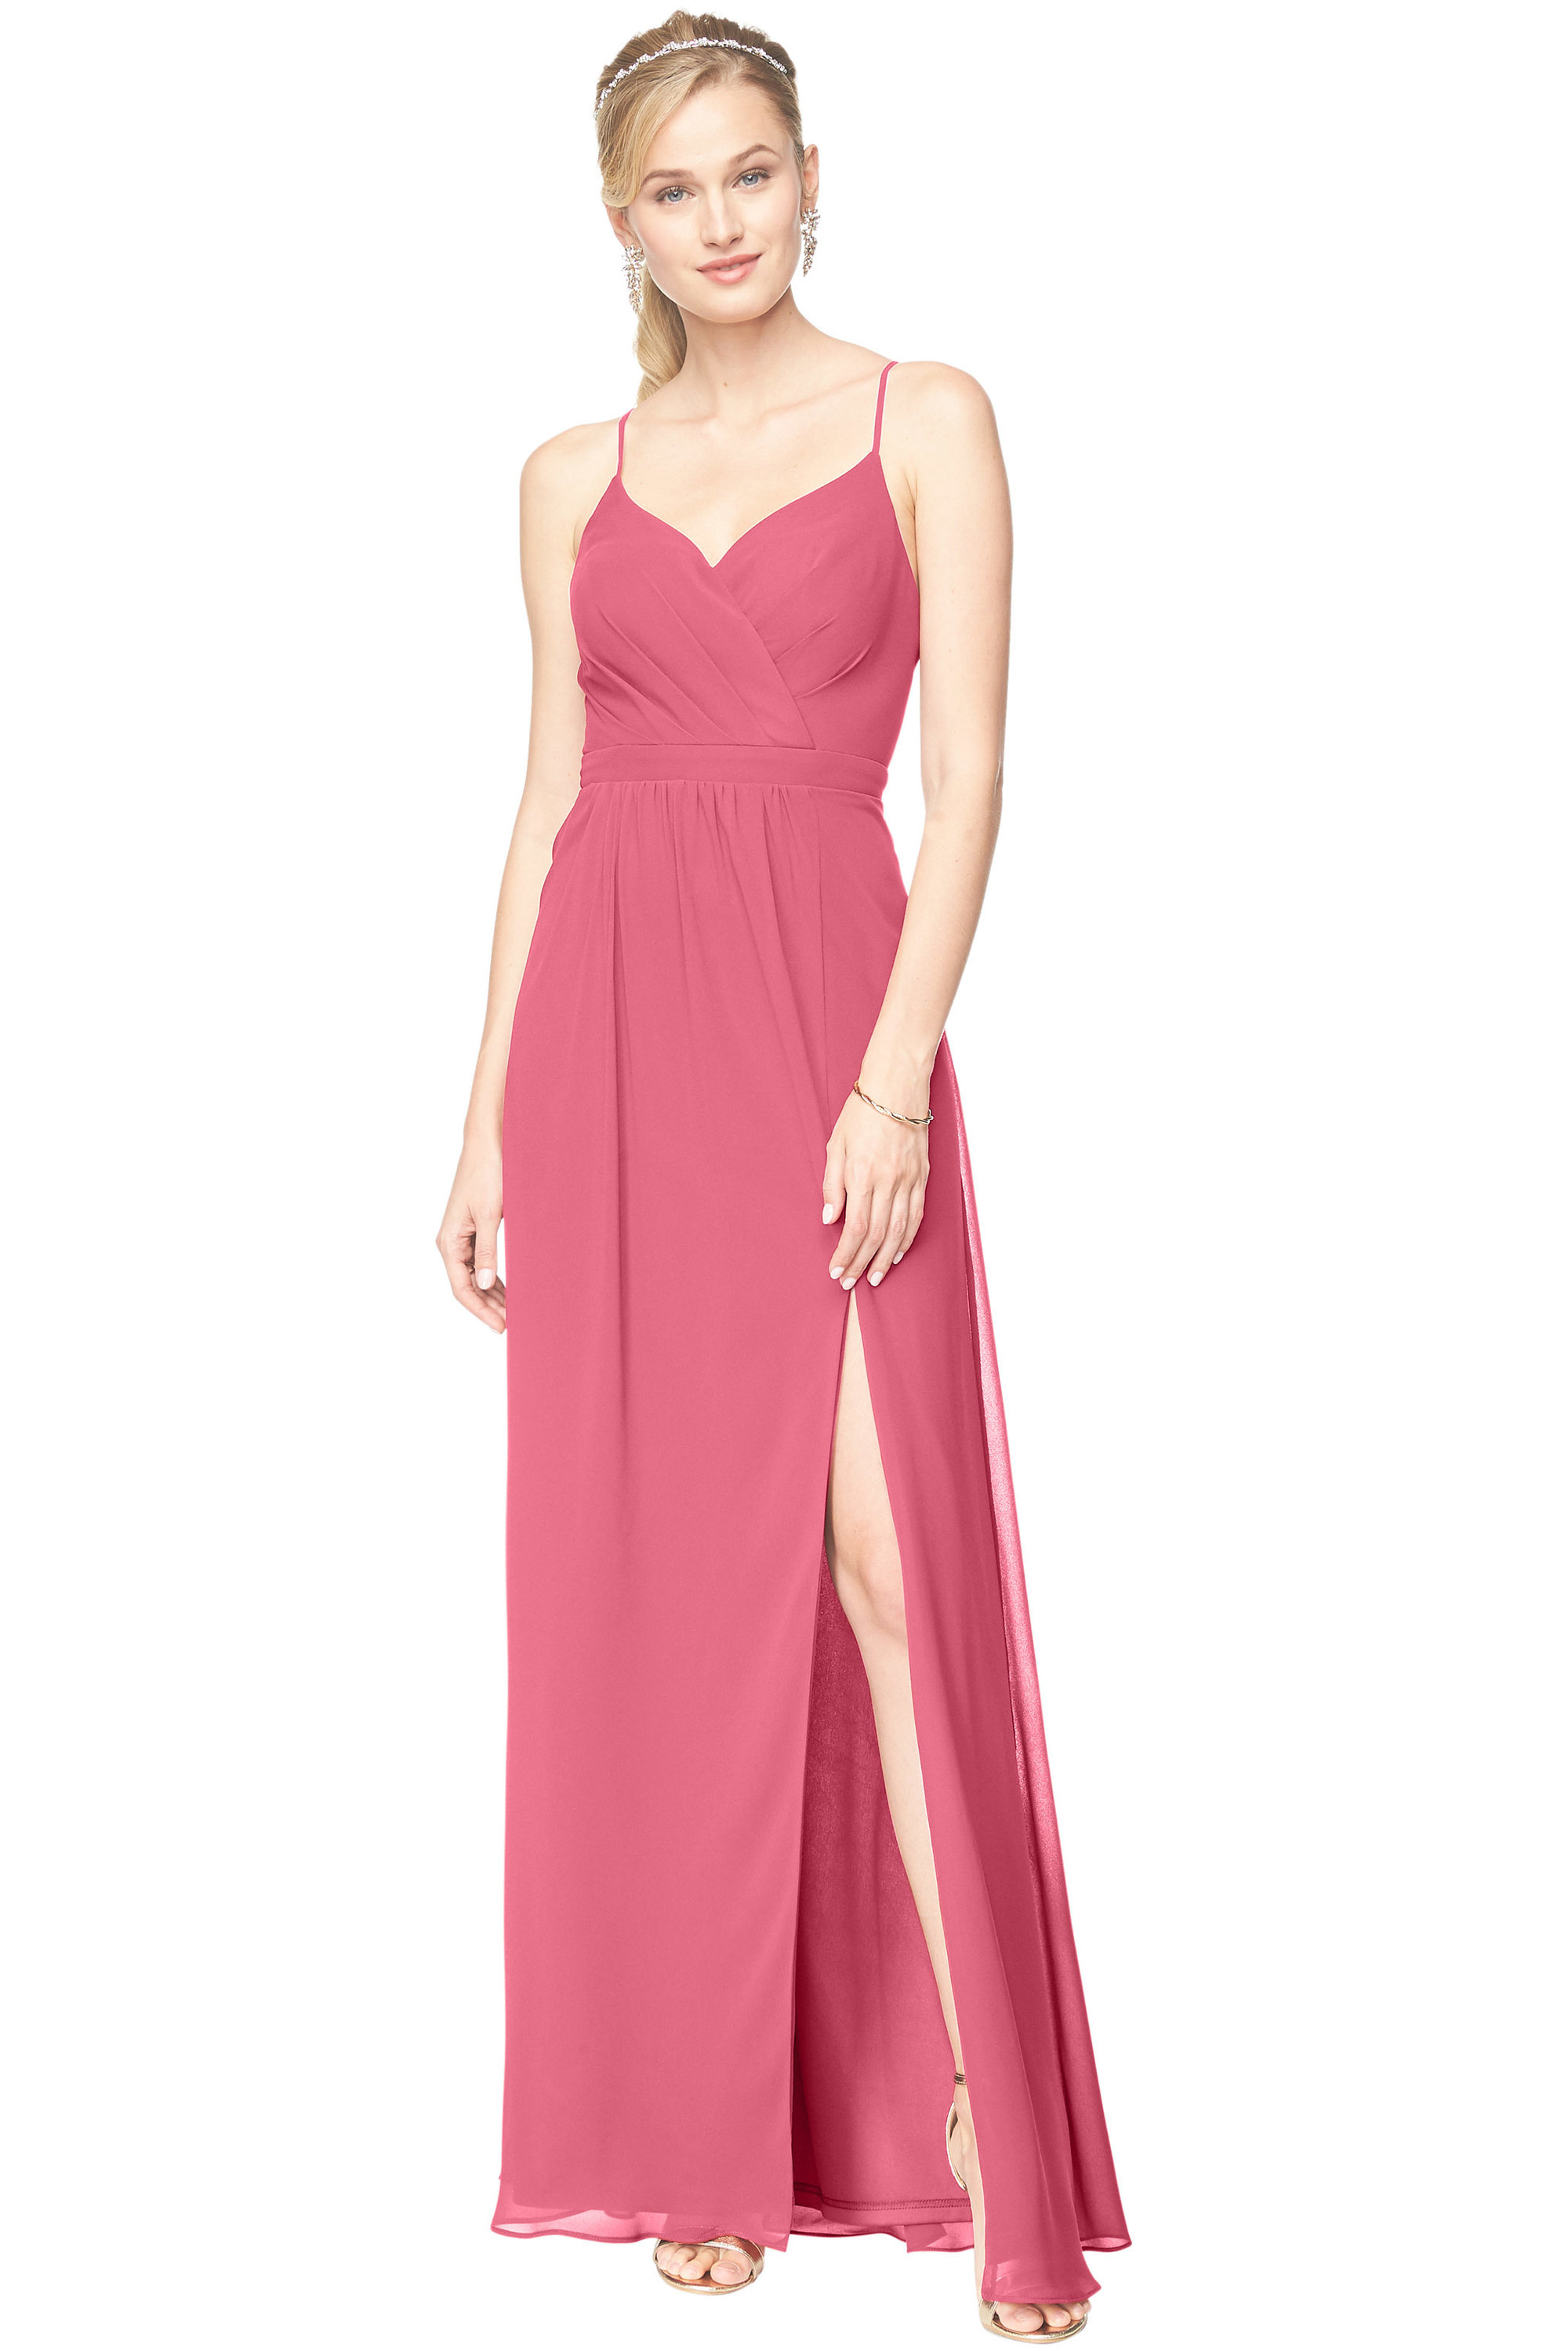 Bill Levkoff ROSEPETAL Chiffon Surplice A-Line gown, $178.00 Front